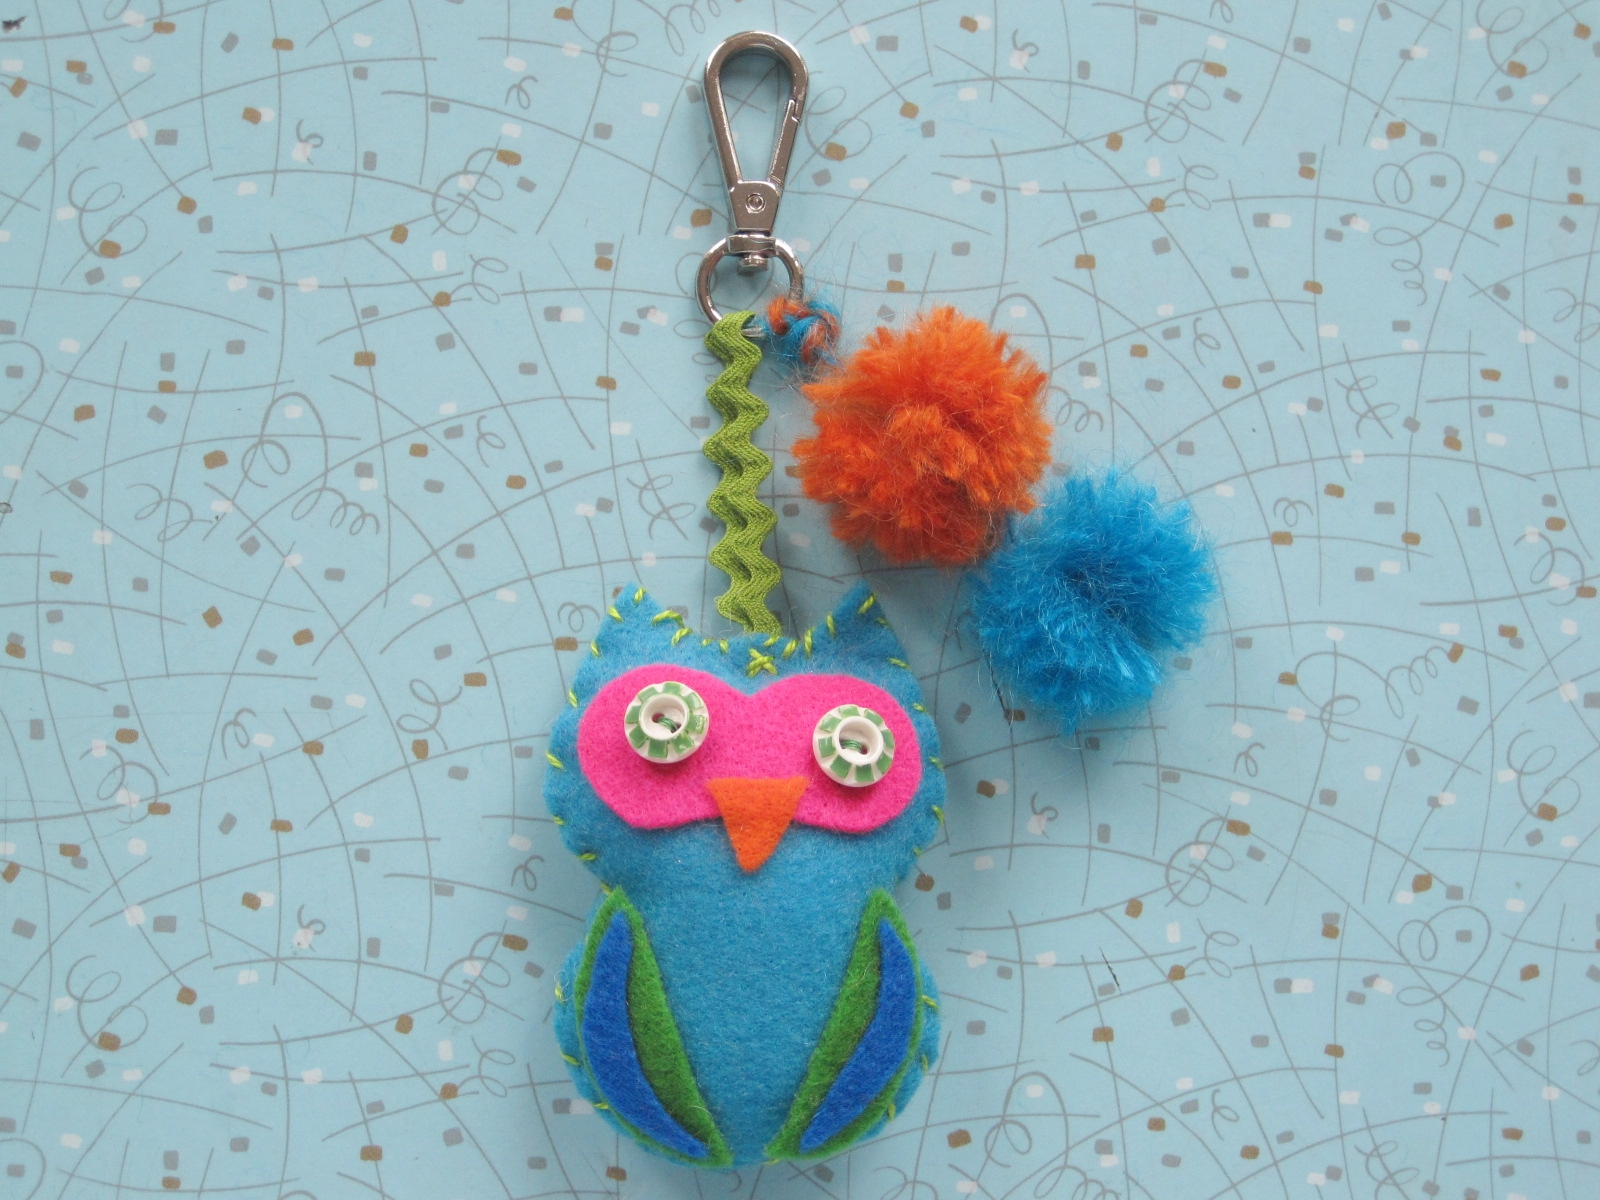 Charmed I'm Sure! -ages 7 and up - Are you ready to stand out from the crowd? Add a little pizzazz to your back pack with this